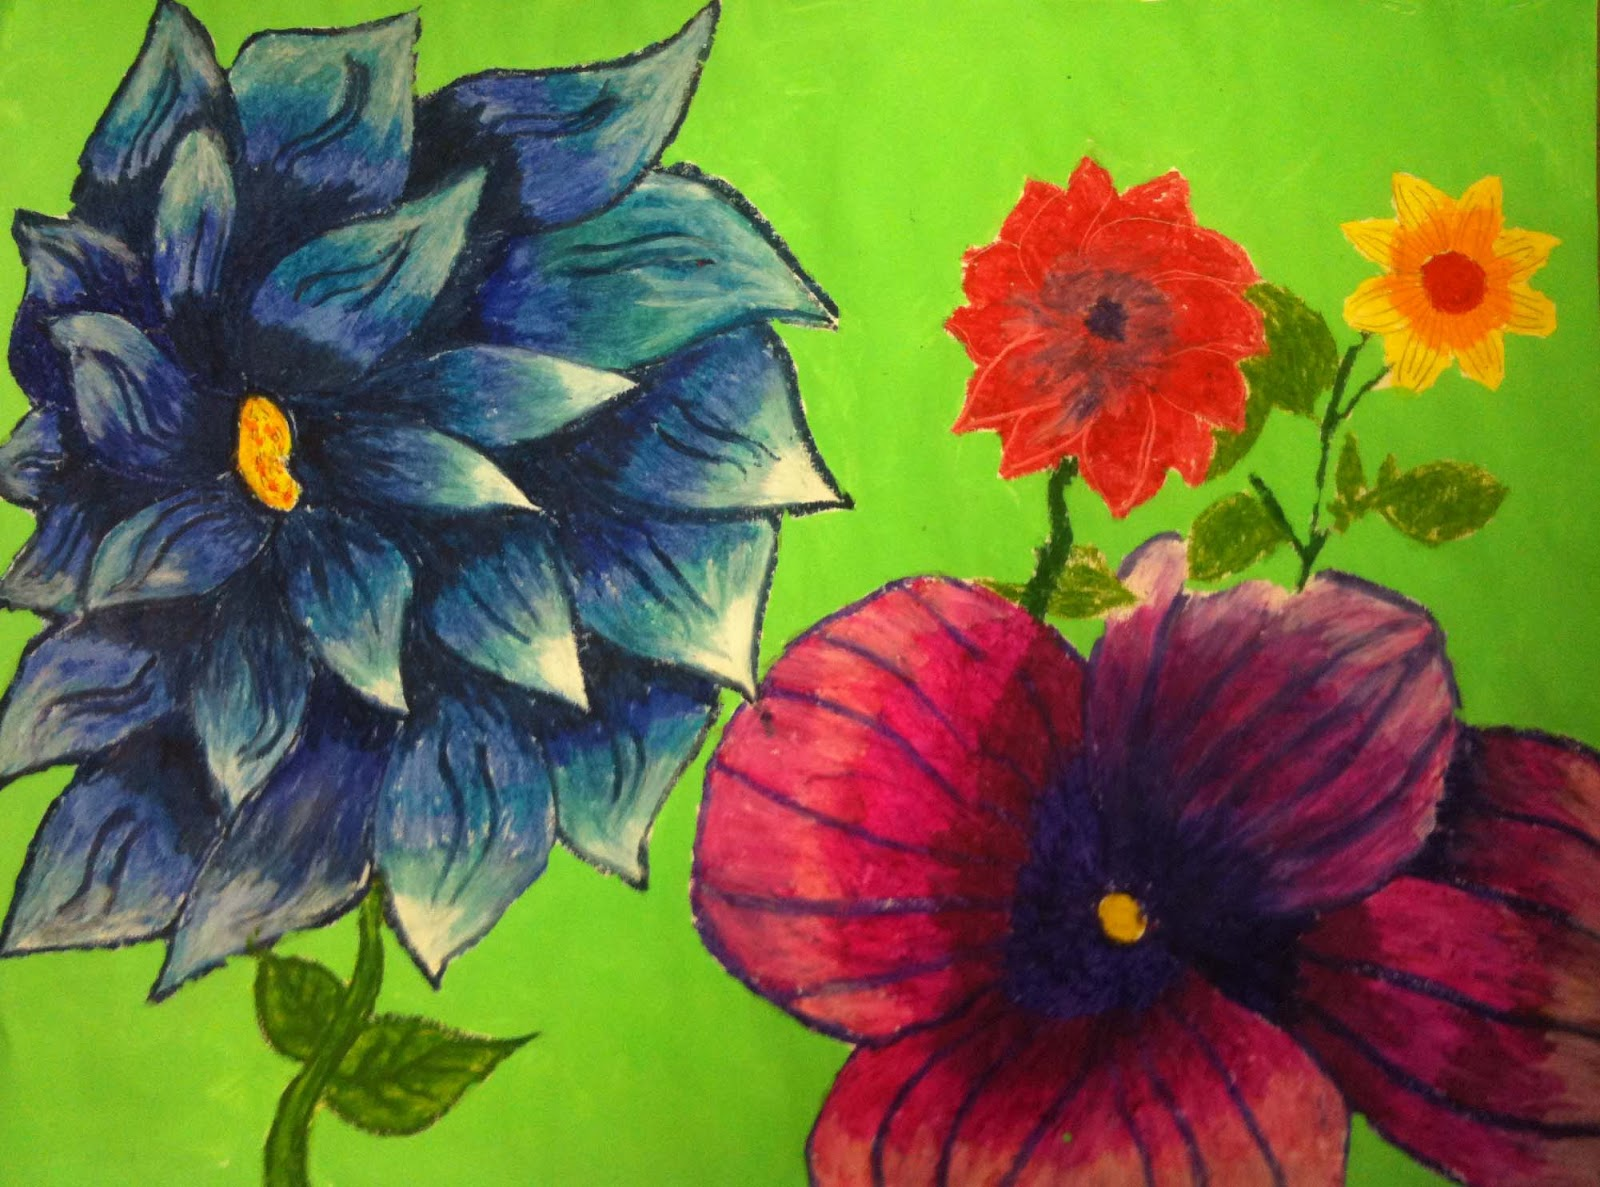 The Helpful Art Teacher A garden of flowers blending colors using oil pastels